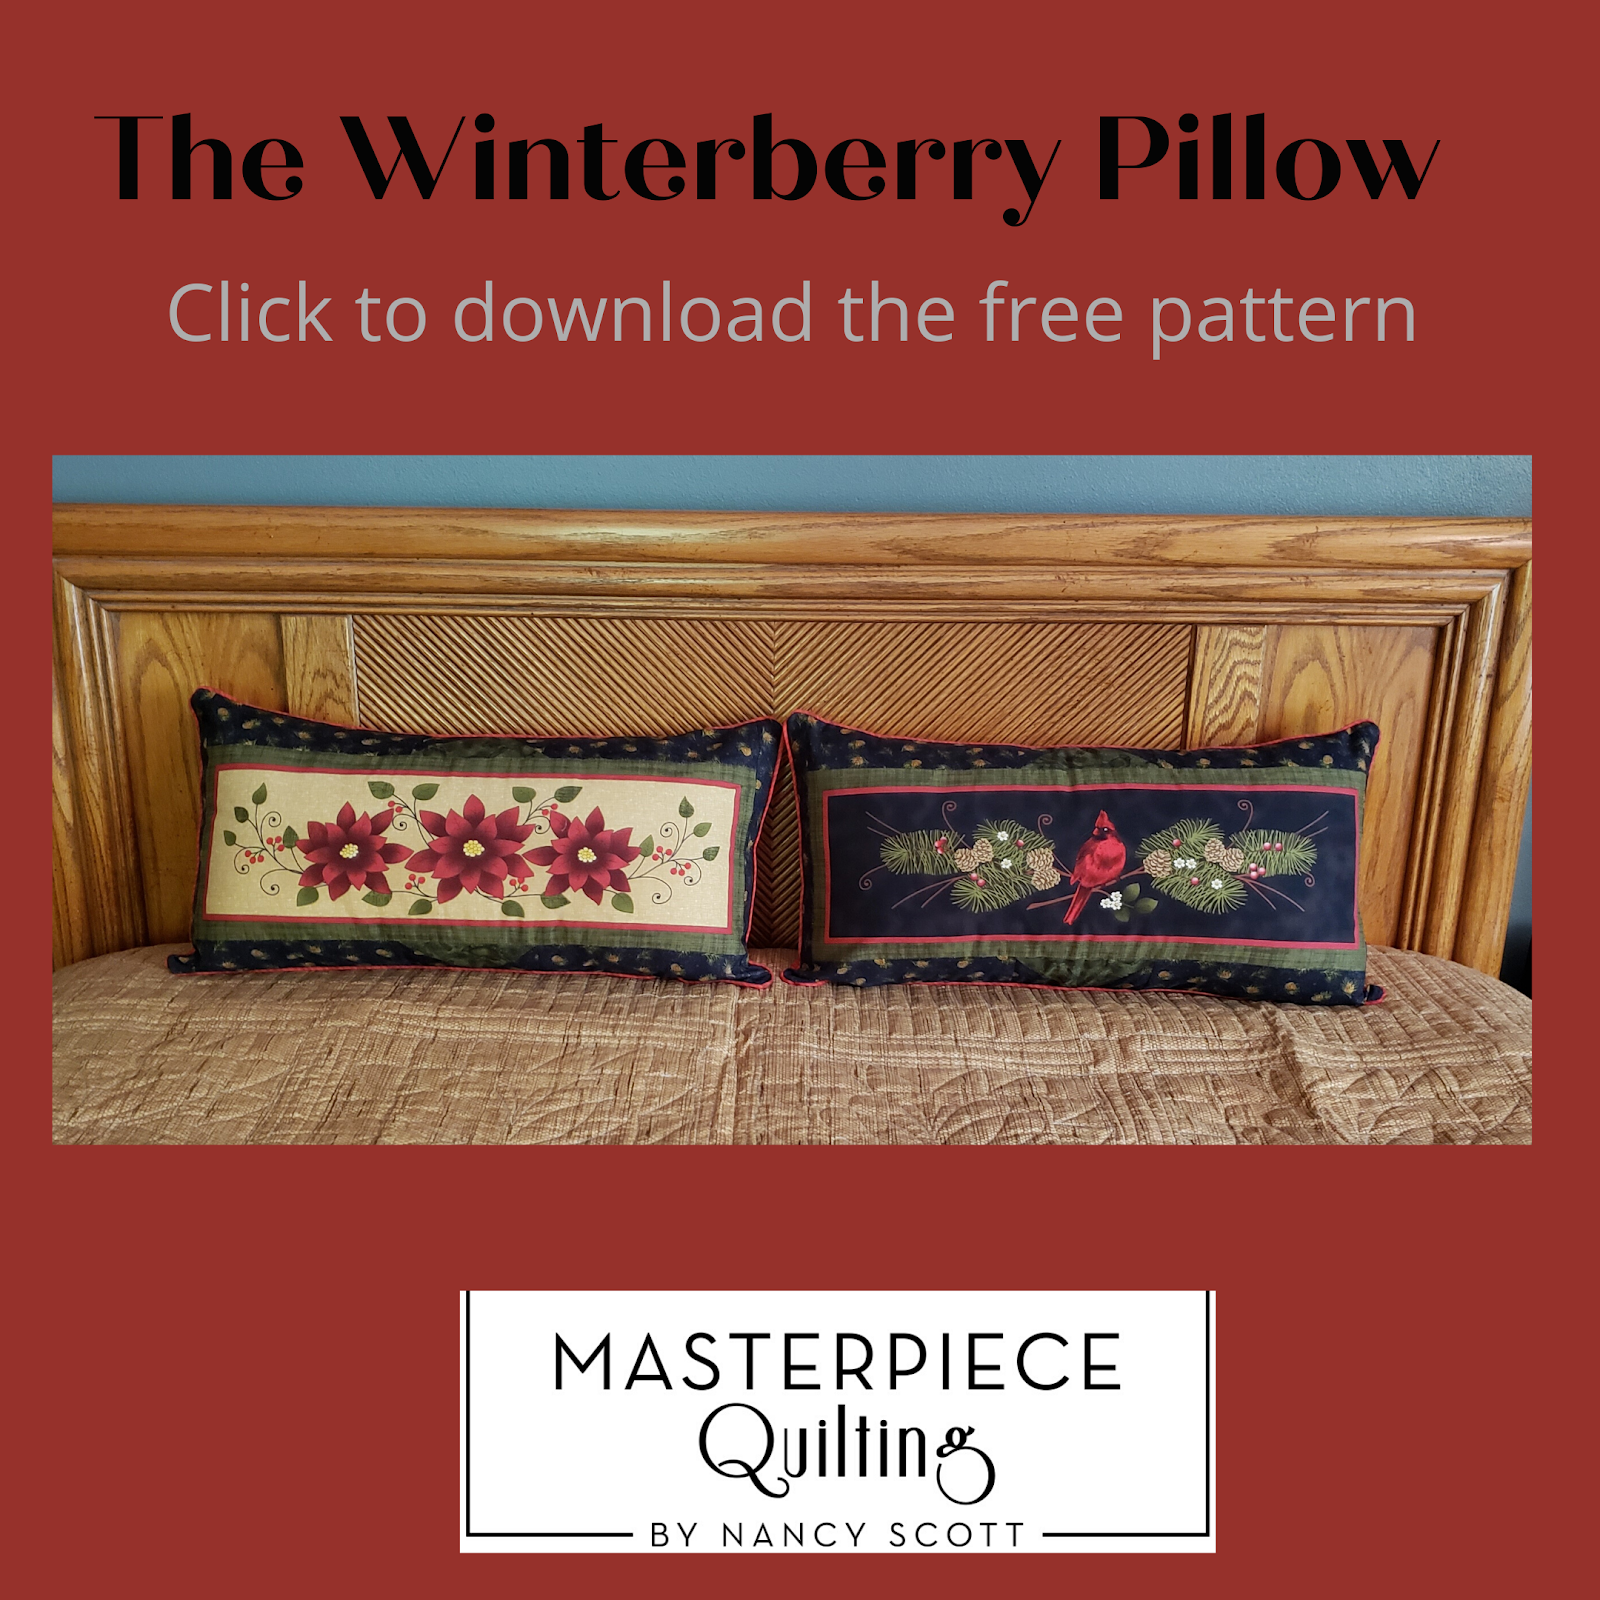 The Winterberry Pillow Free Pattern